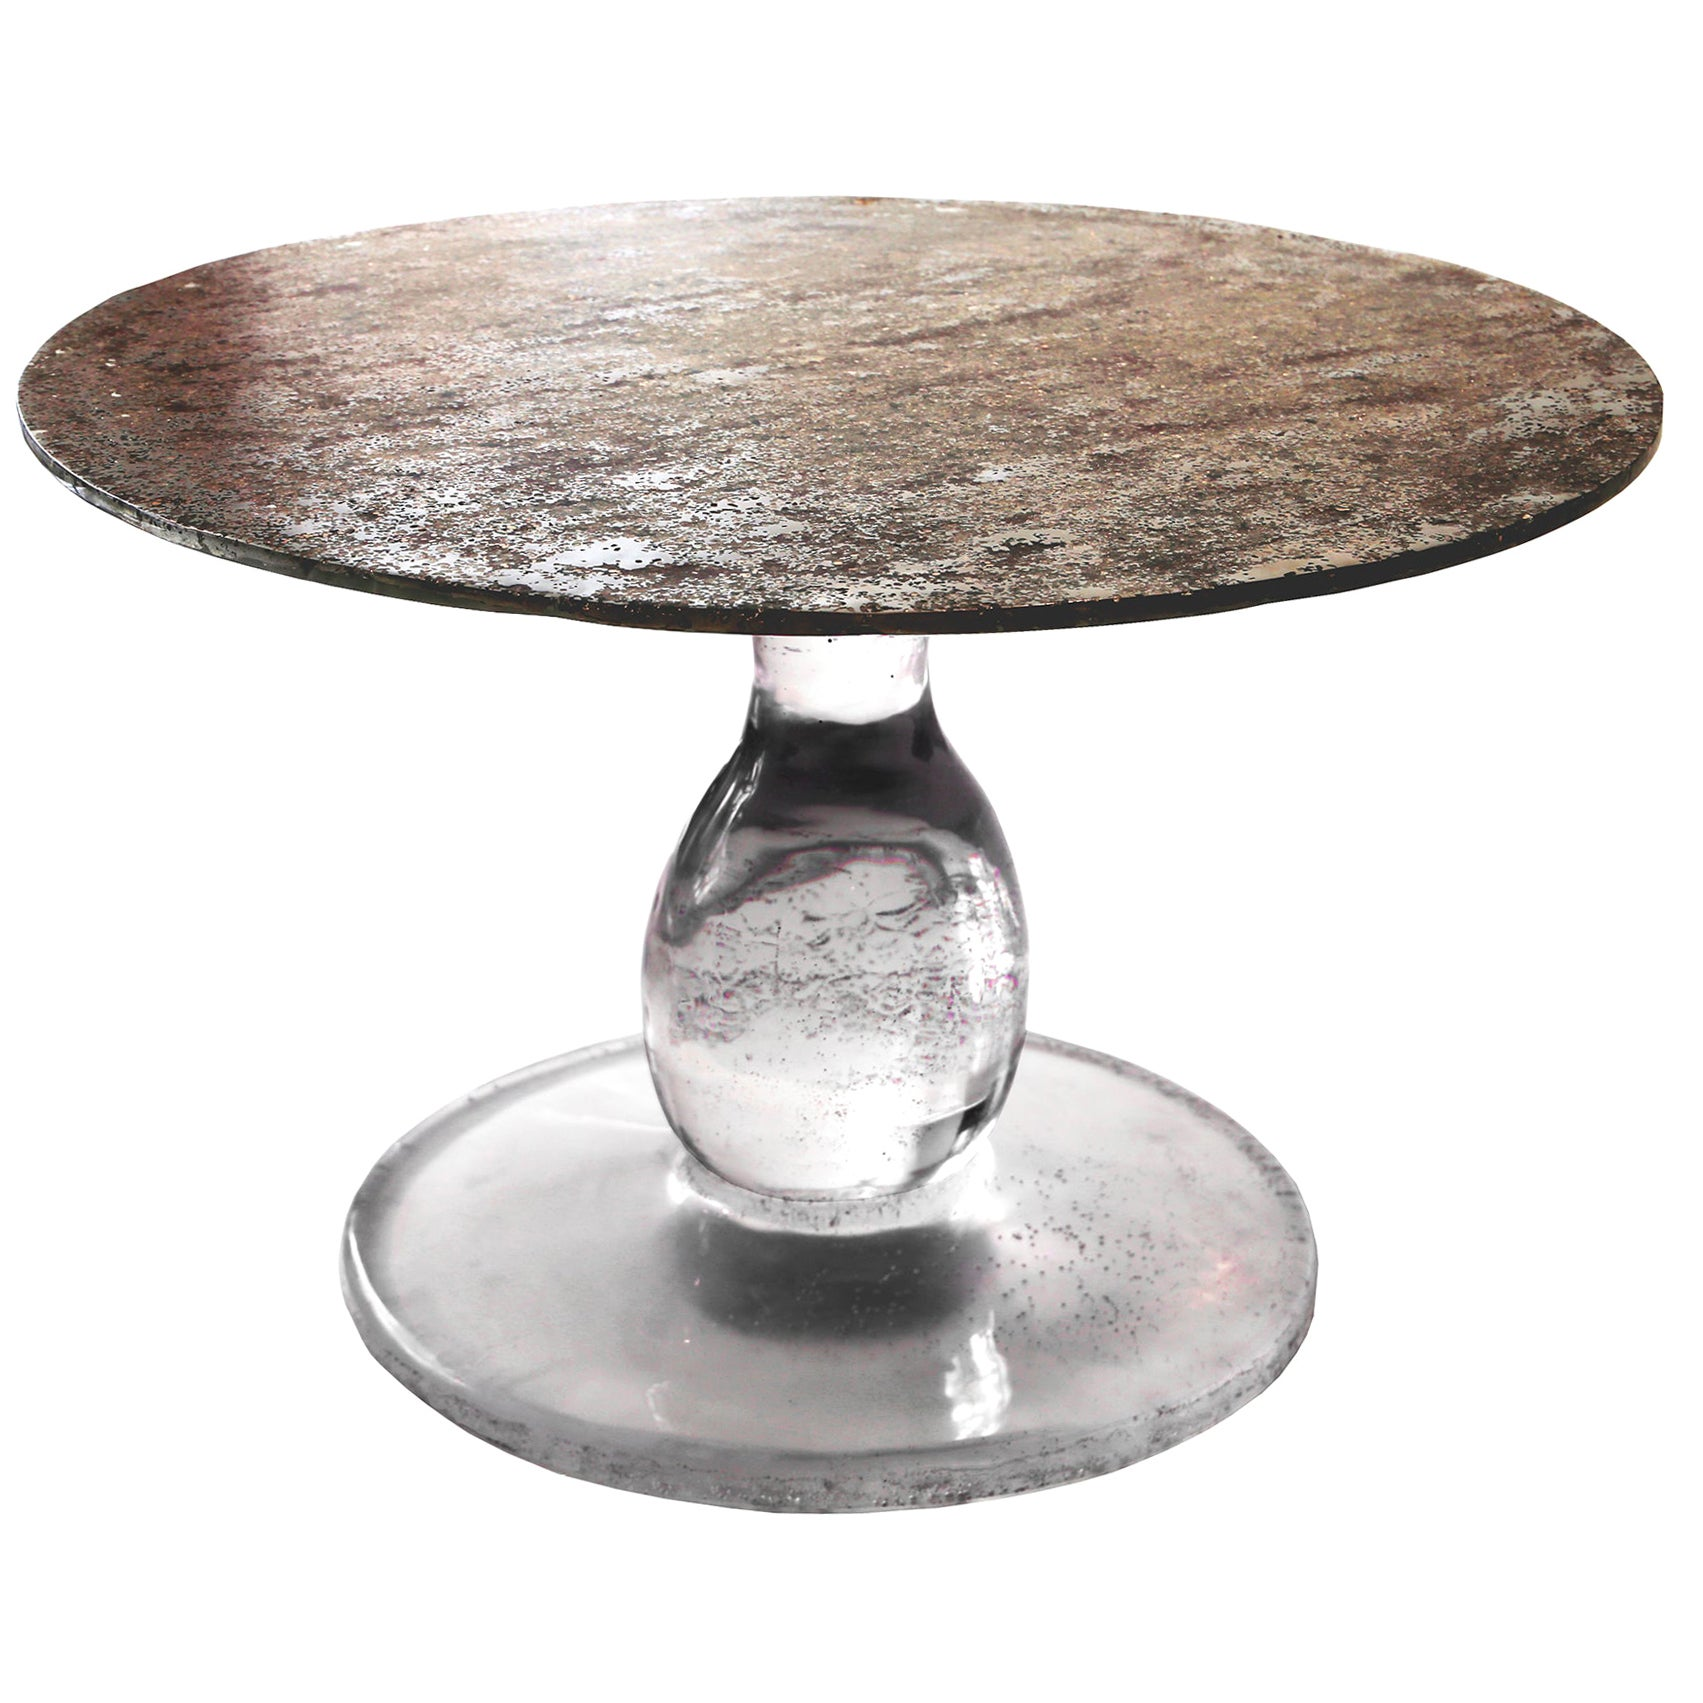 """Pedestal Table Star Dust """"Lowtide"""", Melted Pewter, Coral Design, Resin"""